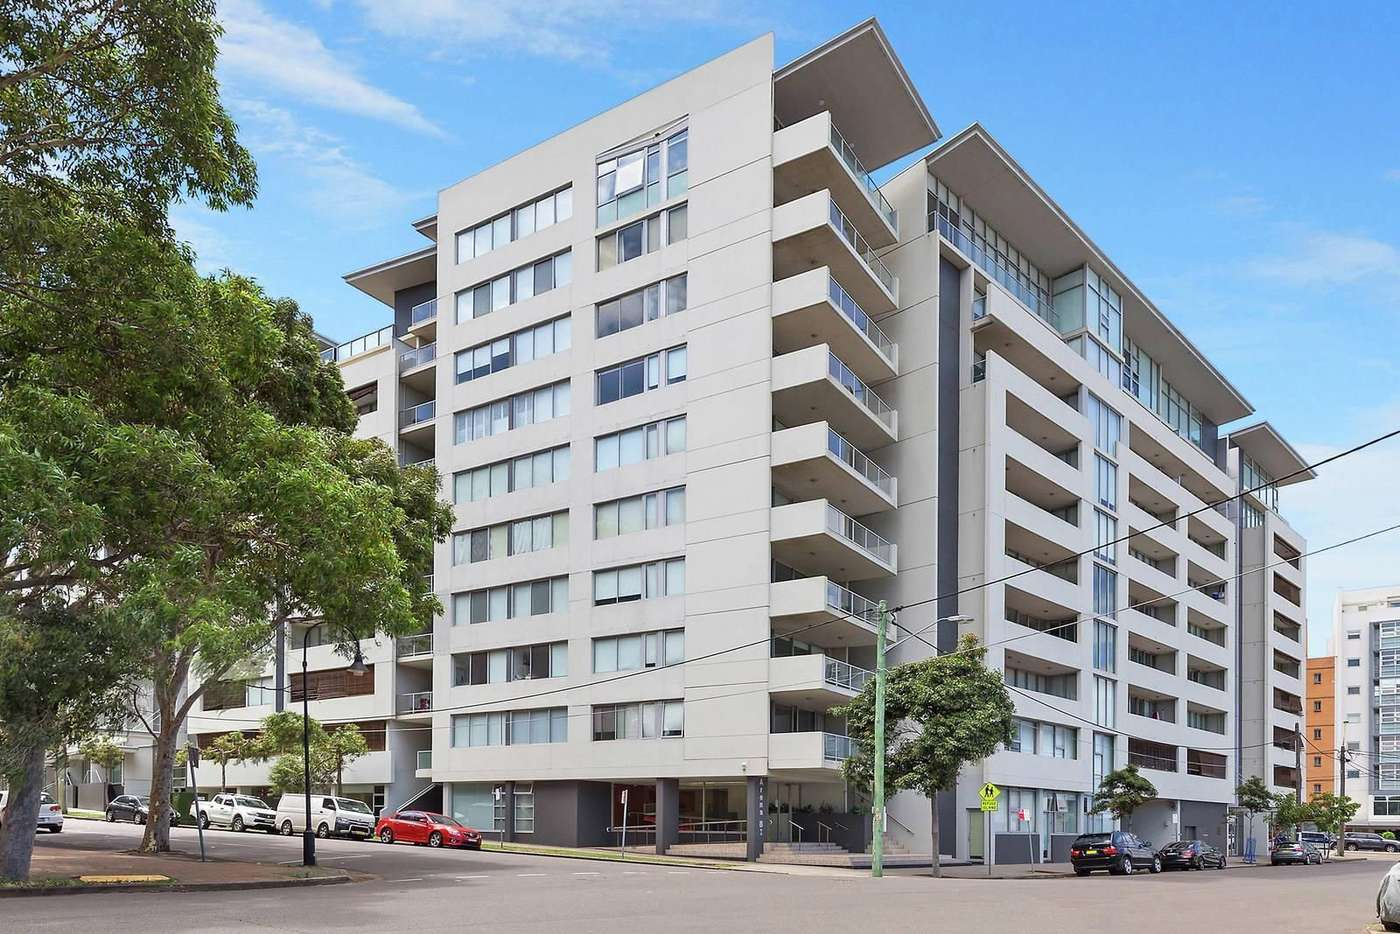 Main view of Homely apartment listing, 137/555 Princes Highway, Rockdale NSW 2216